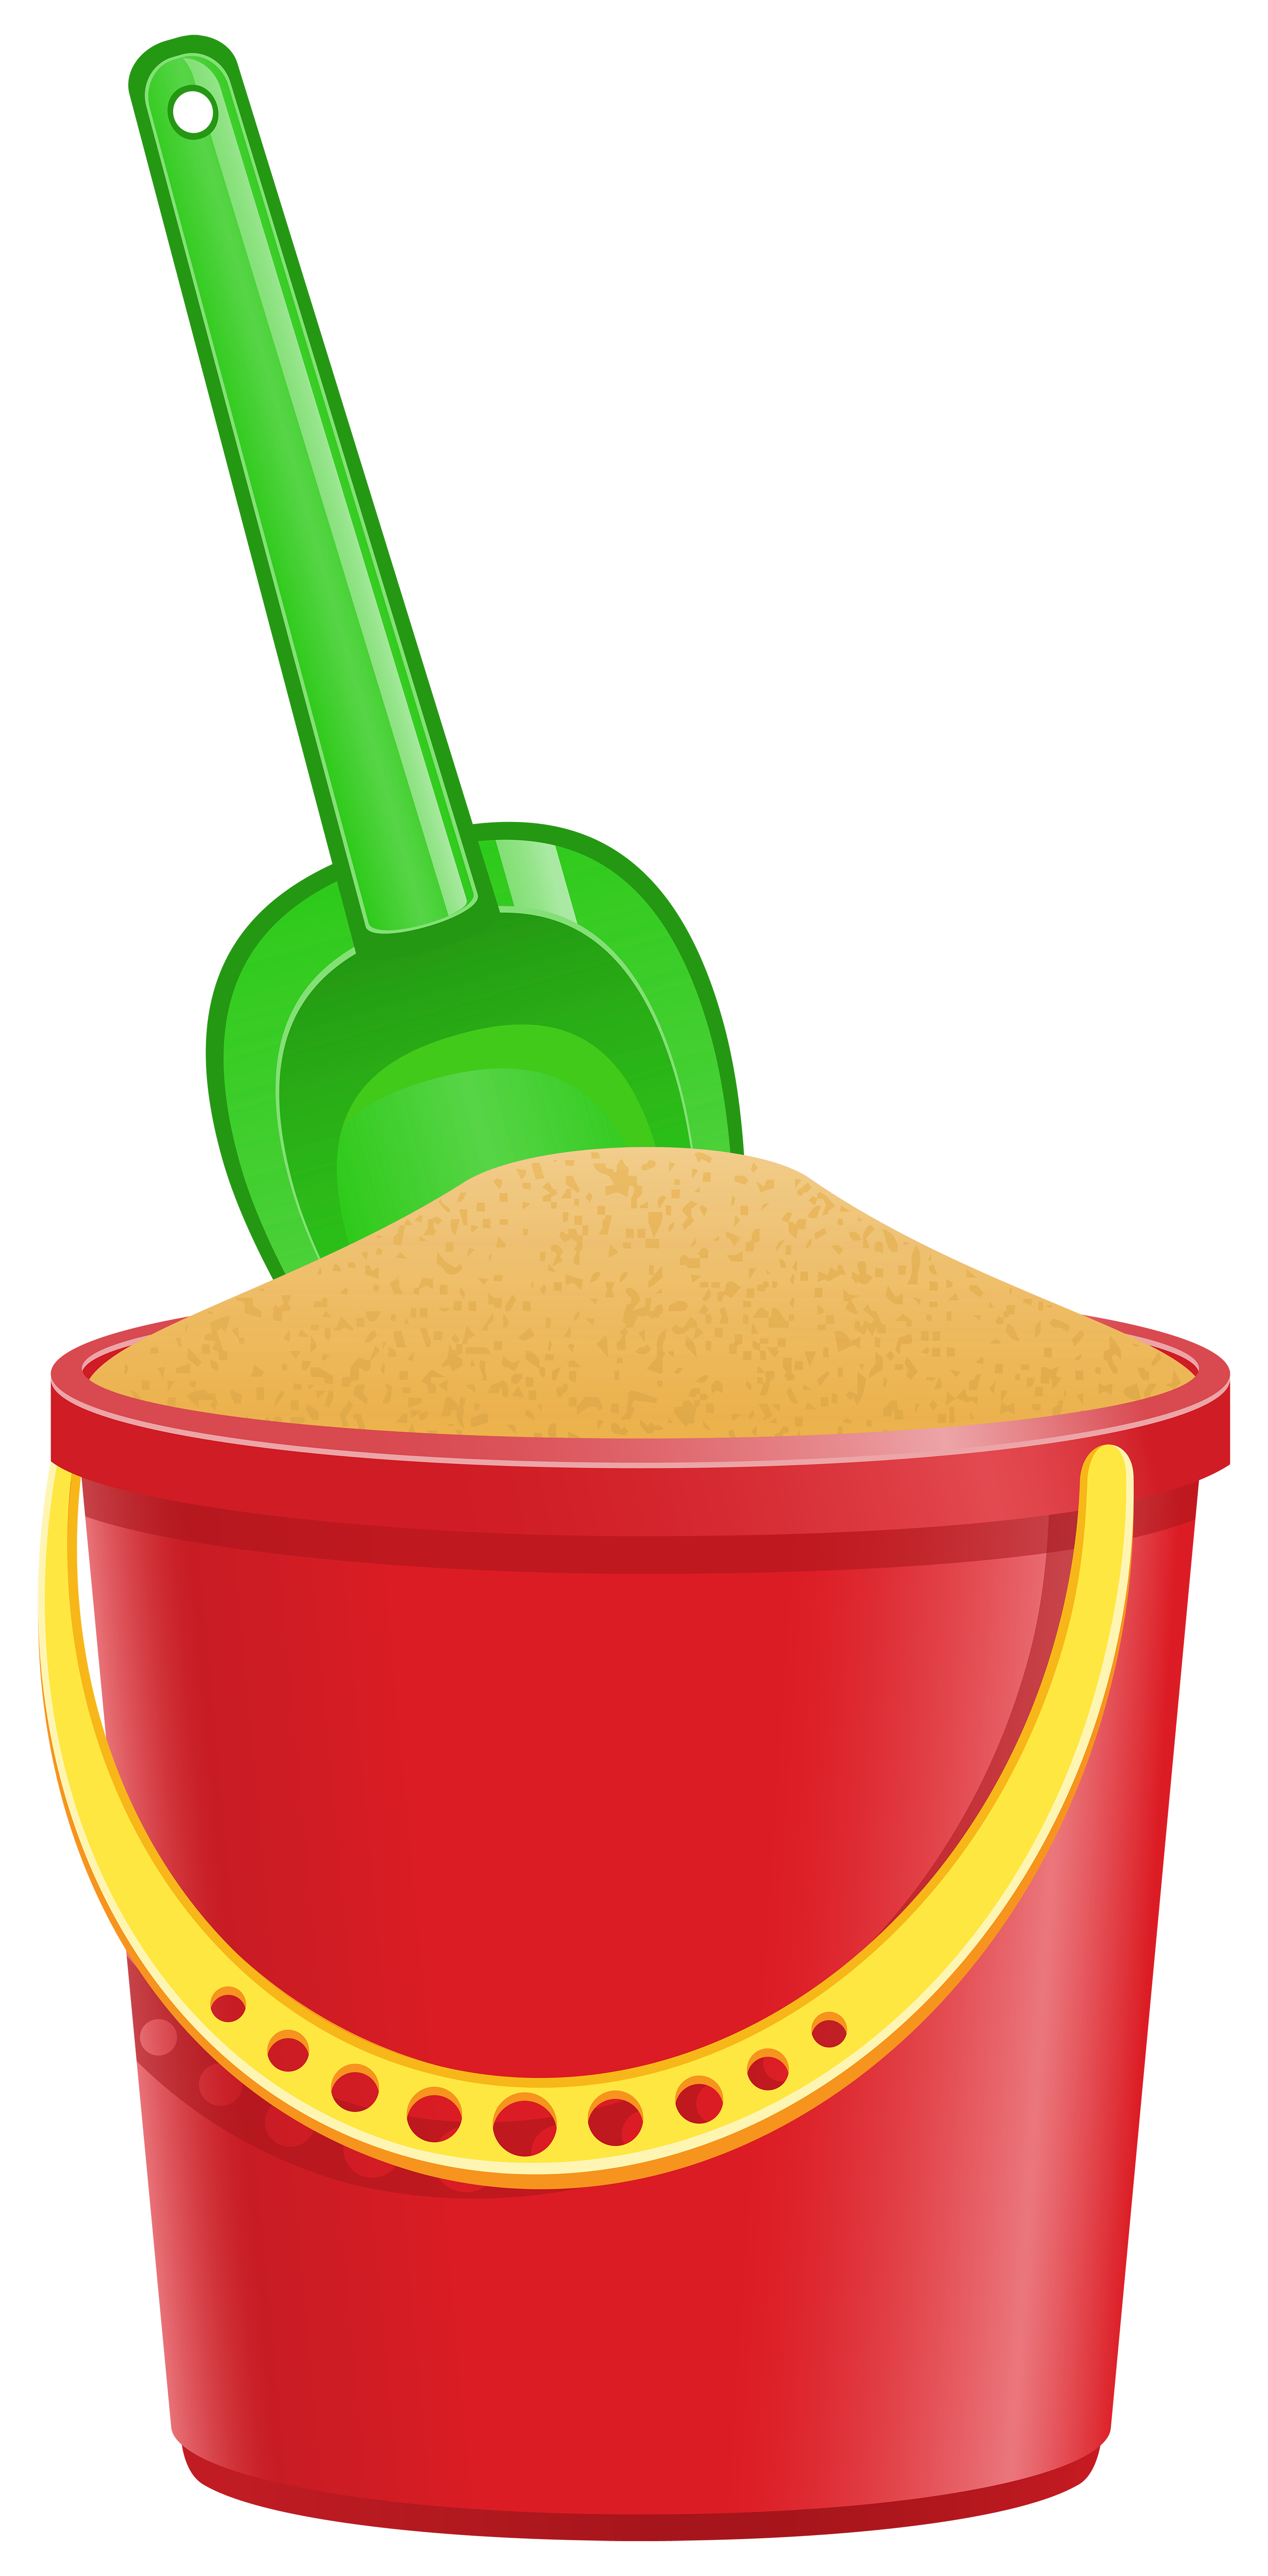 Fruits clipart bucket. With shovel transparent png